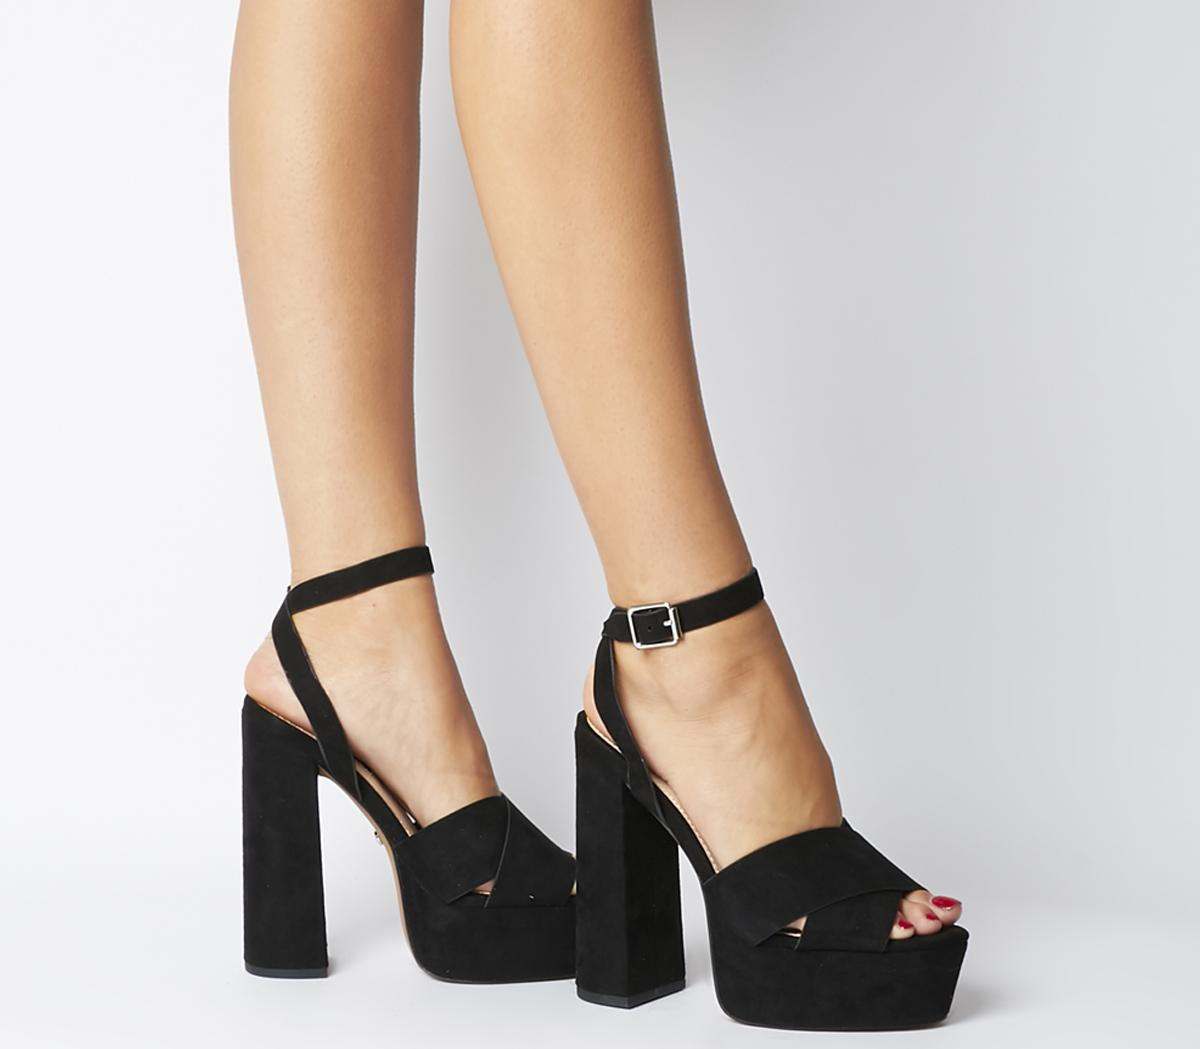 Highflying Extreme Platform Heels